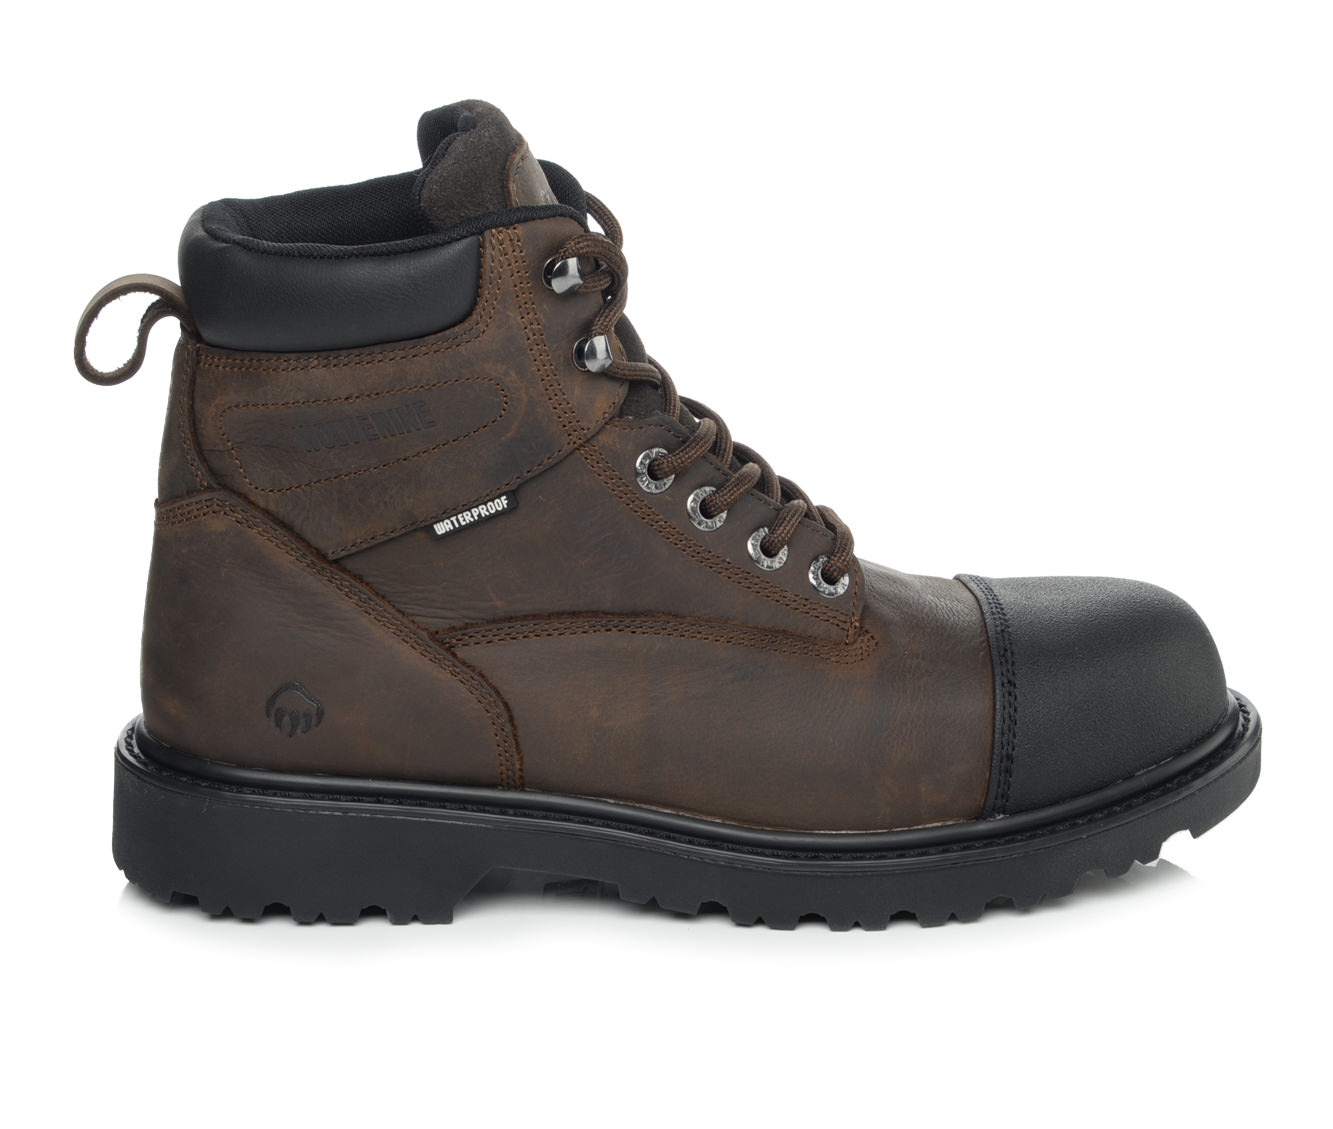 Wolverine Rig 6 In Soft Toe Men's Boots (Brown Leather)